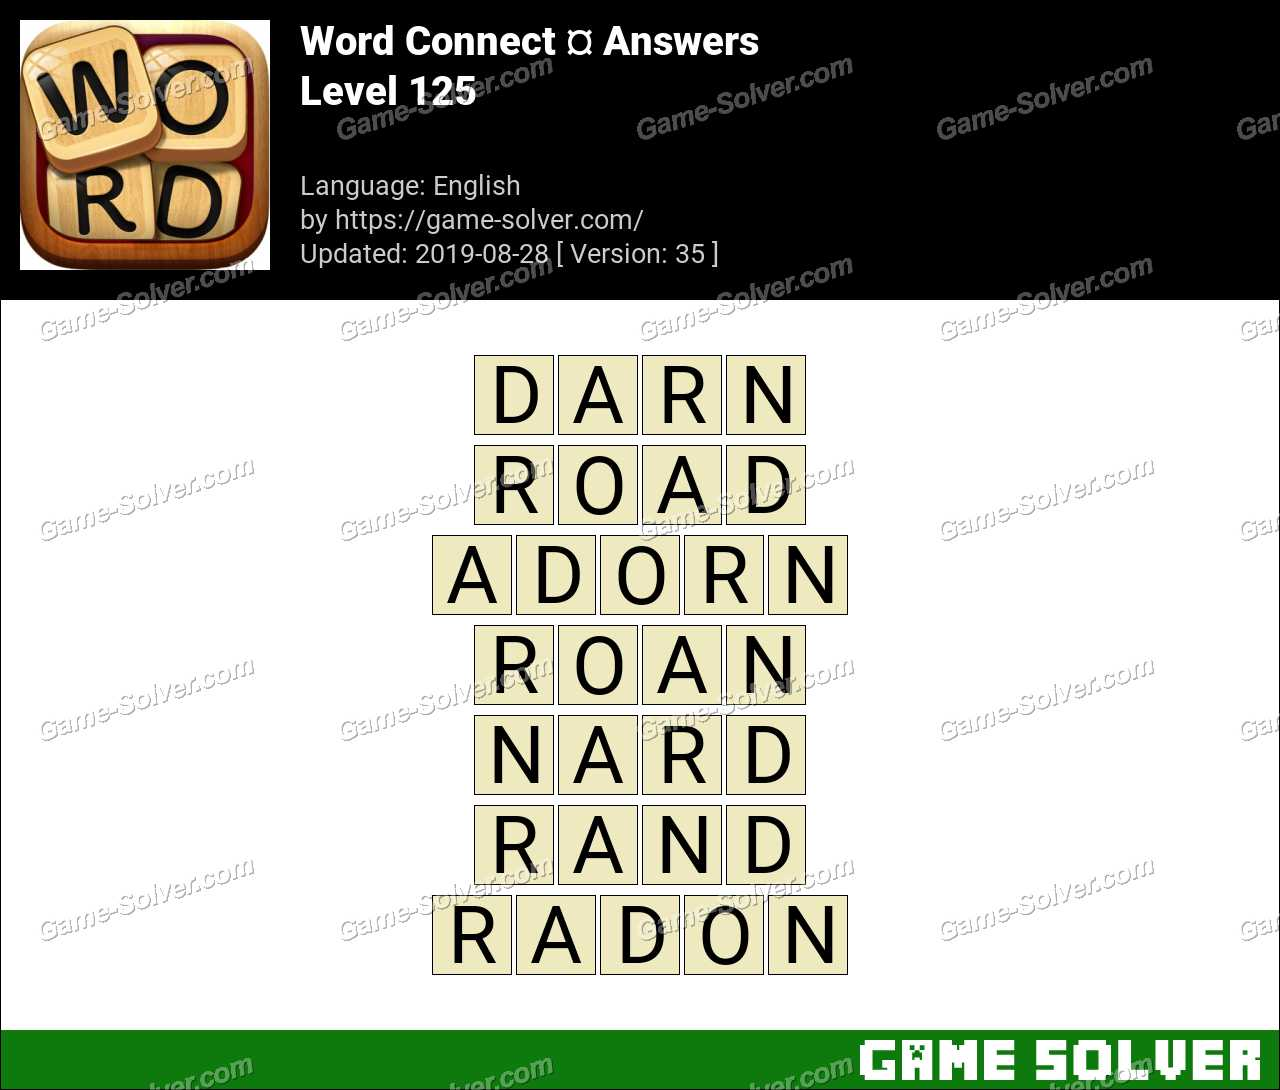 Word Connect Level 125 Answers